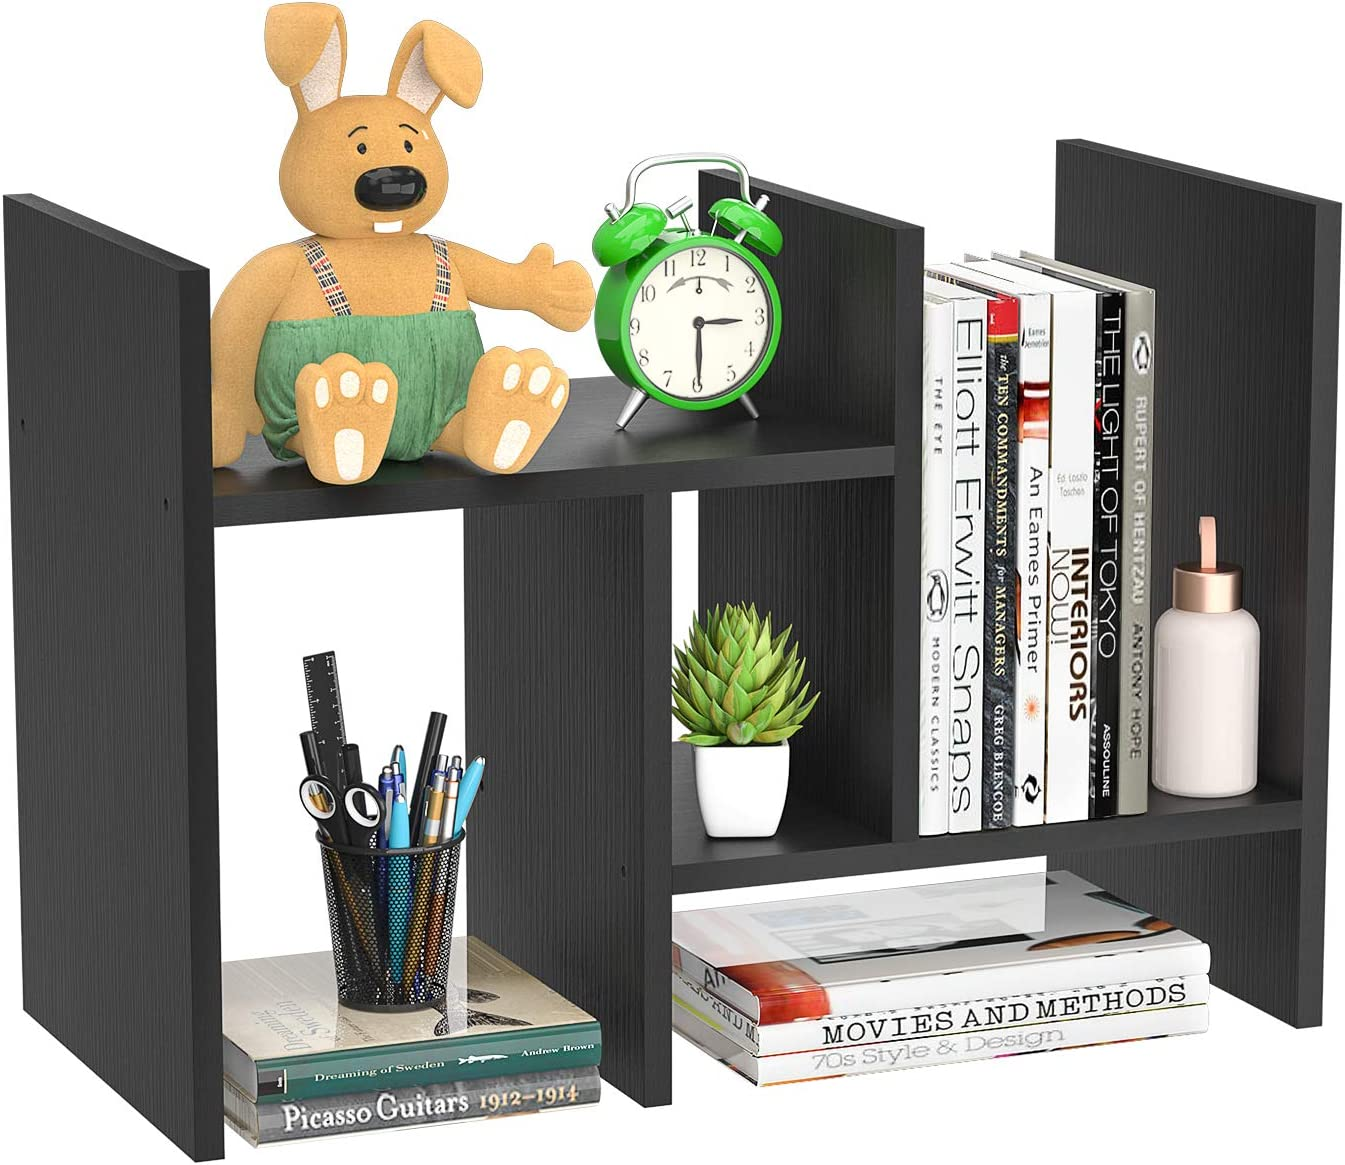 FoxEmart Desktop Shelf Organizer, Adjustable Wood Display Desk Shelf, Countertop Storage Rack Tabletop Bookshelf Multipurpose Shelves for Home Decor, Office, Kitchen, Bathroom - Black